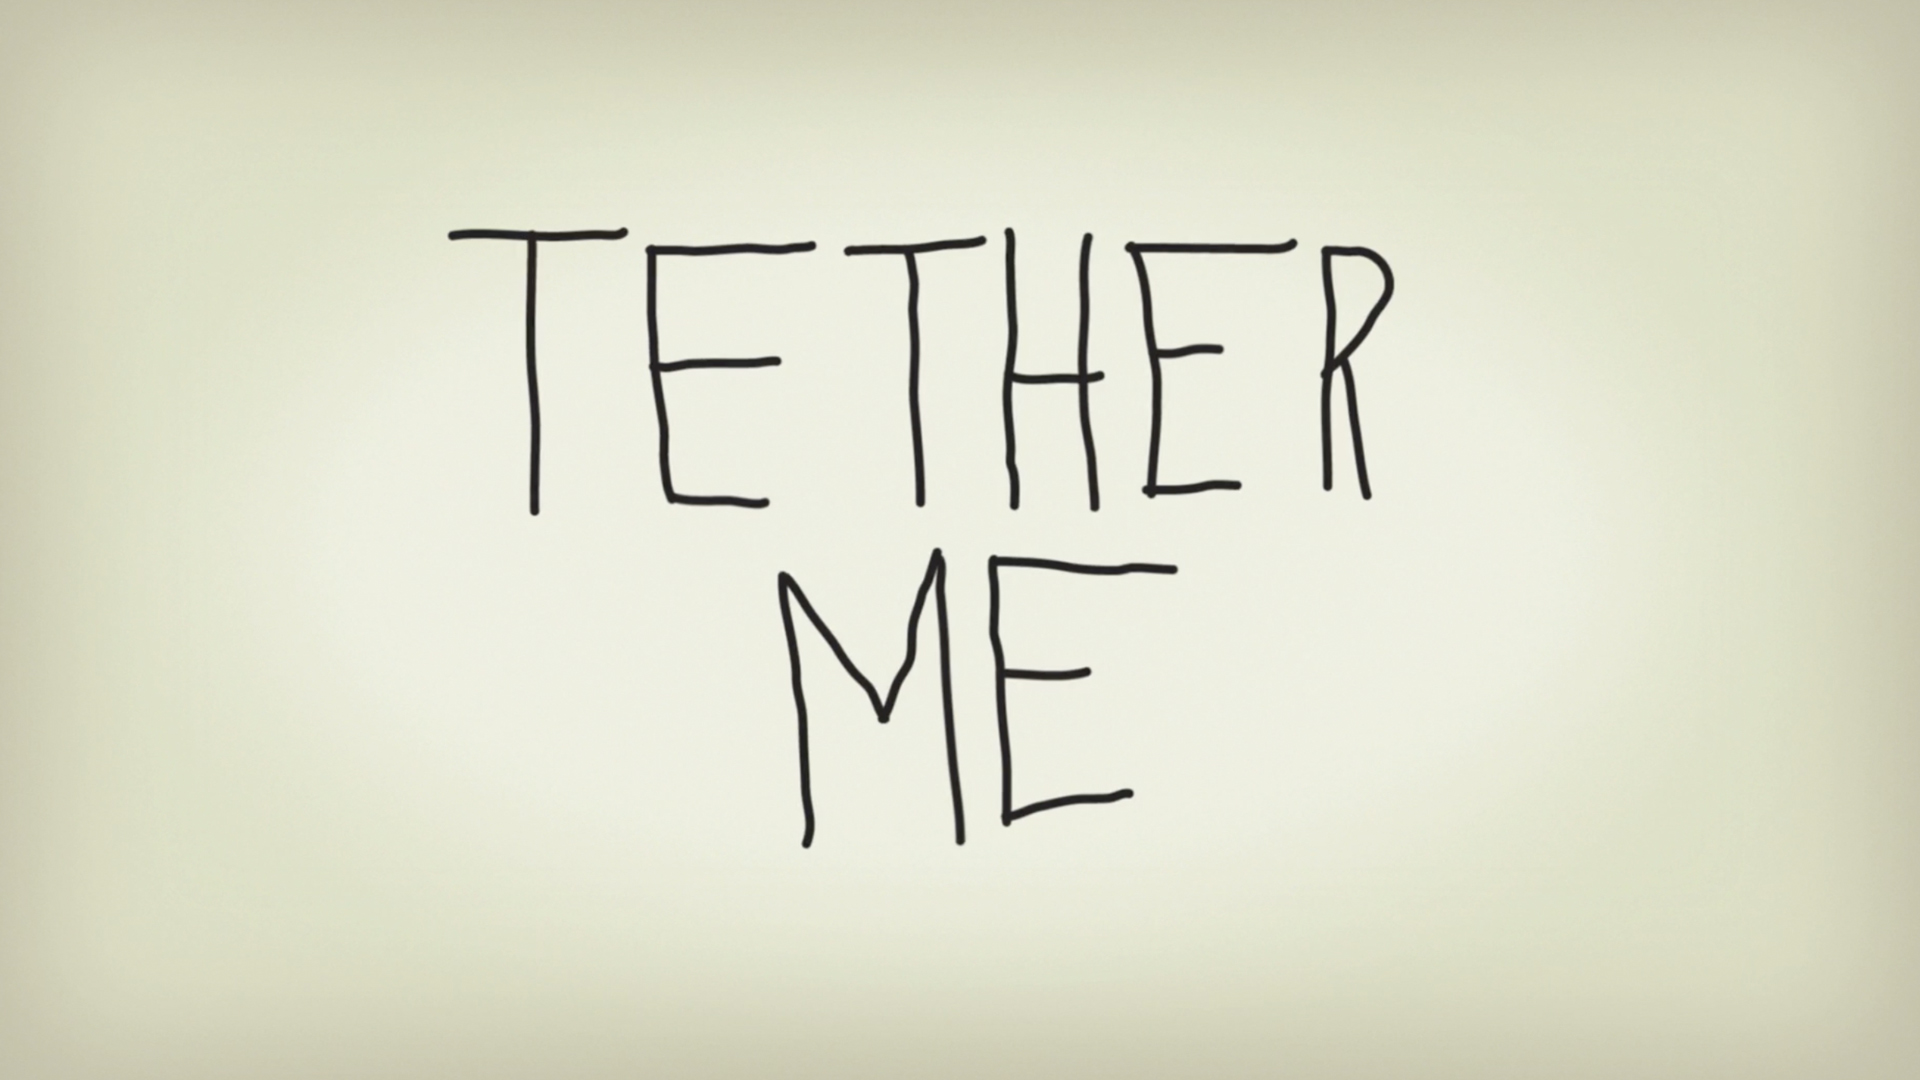 Tether Me